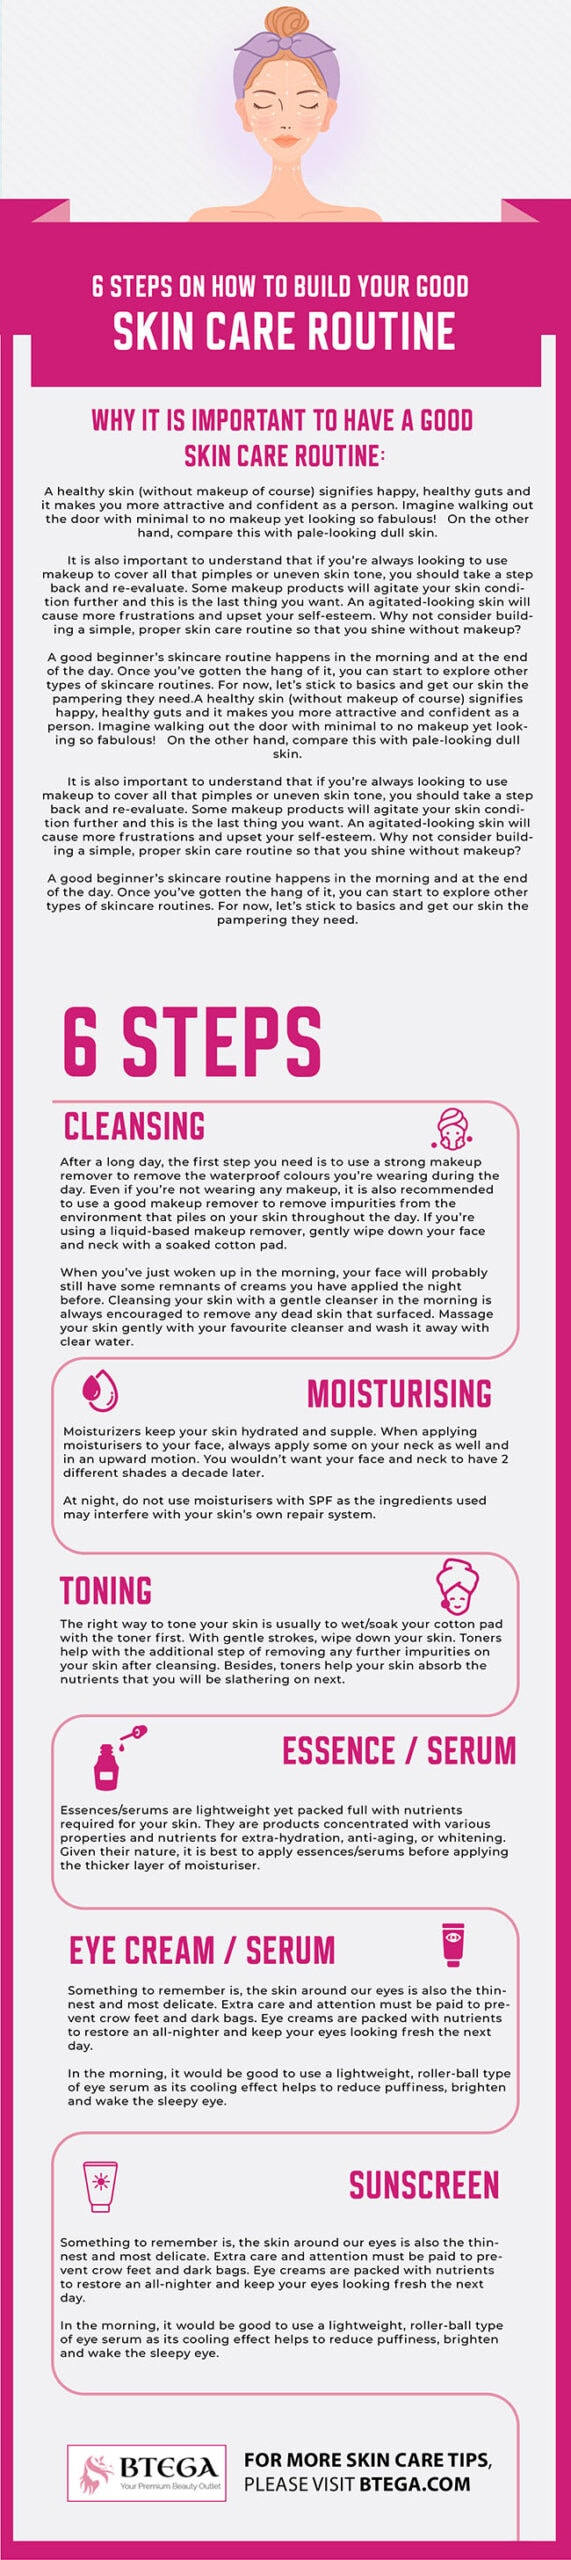 skin care routine - beginner's guide